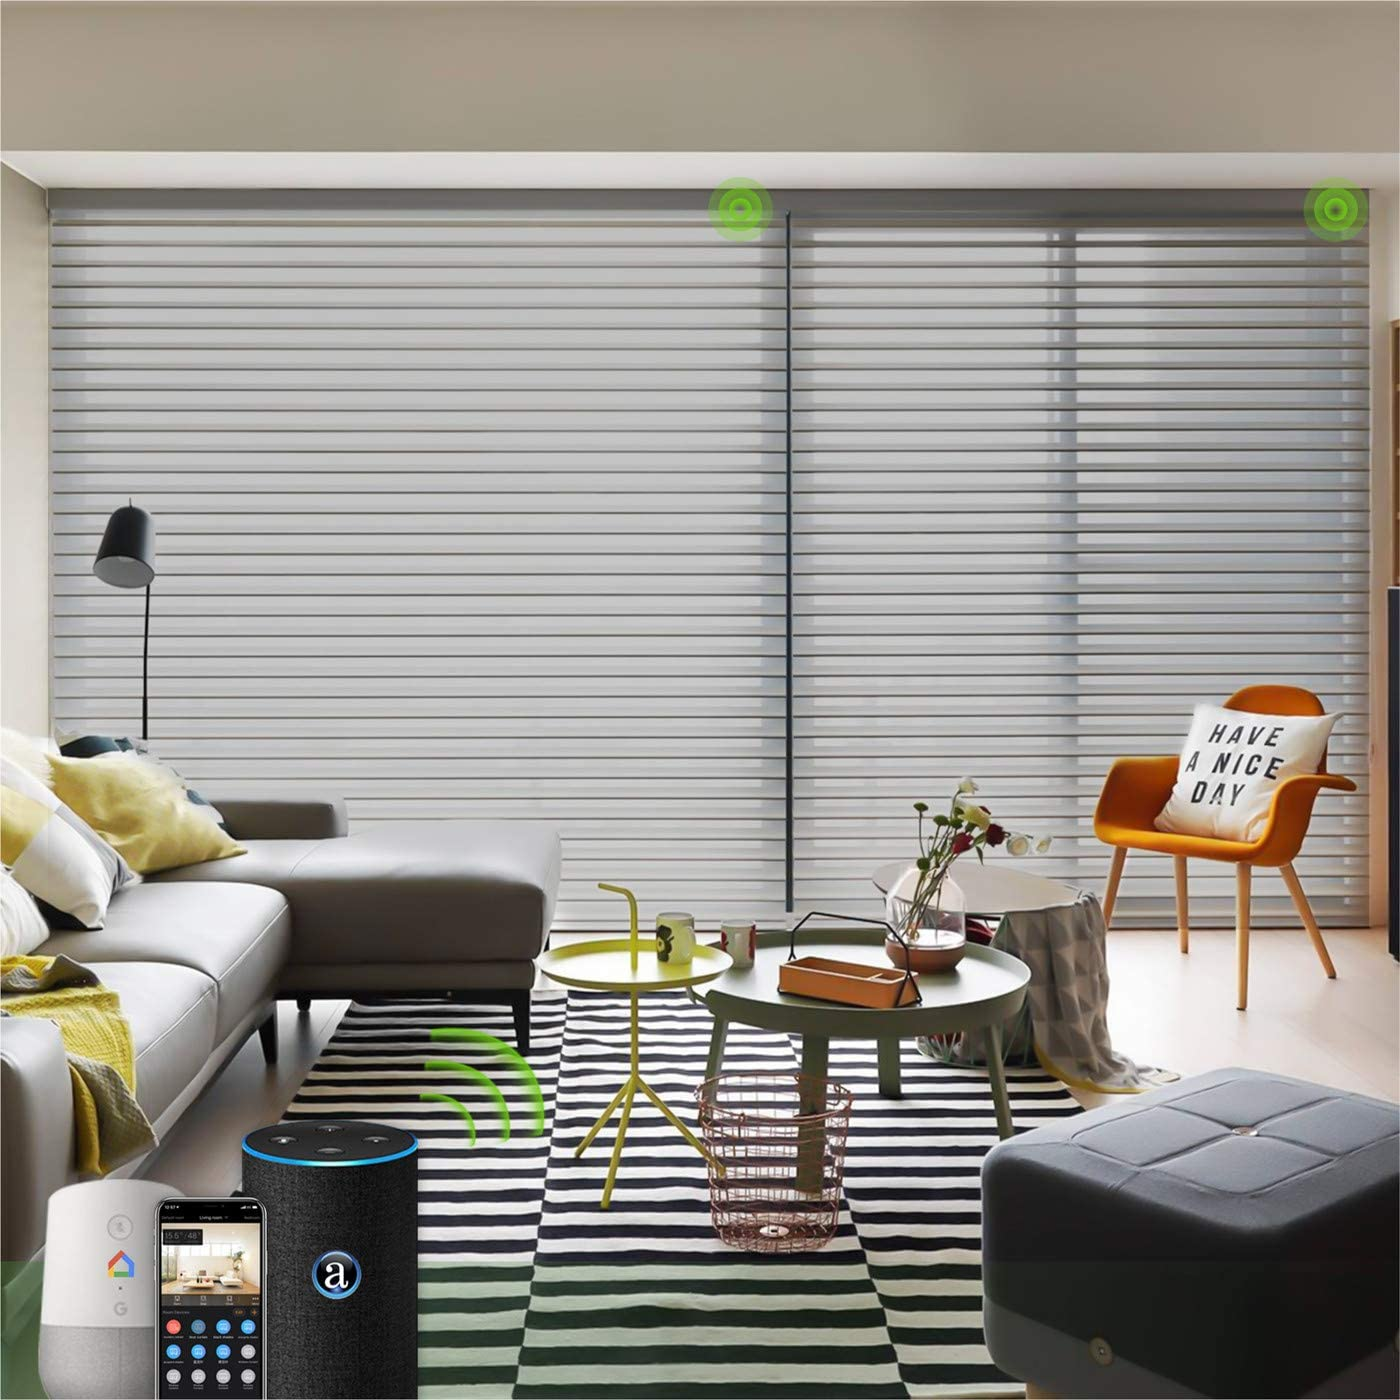 Yoolax Motorized Window Blind Shangri-la Sheer Shade Work with Alexa, Remote Control Wireless Battery Rechargeable Light Filtering for Privacy Customized Size (85% Shading-Grey)